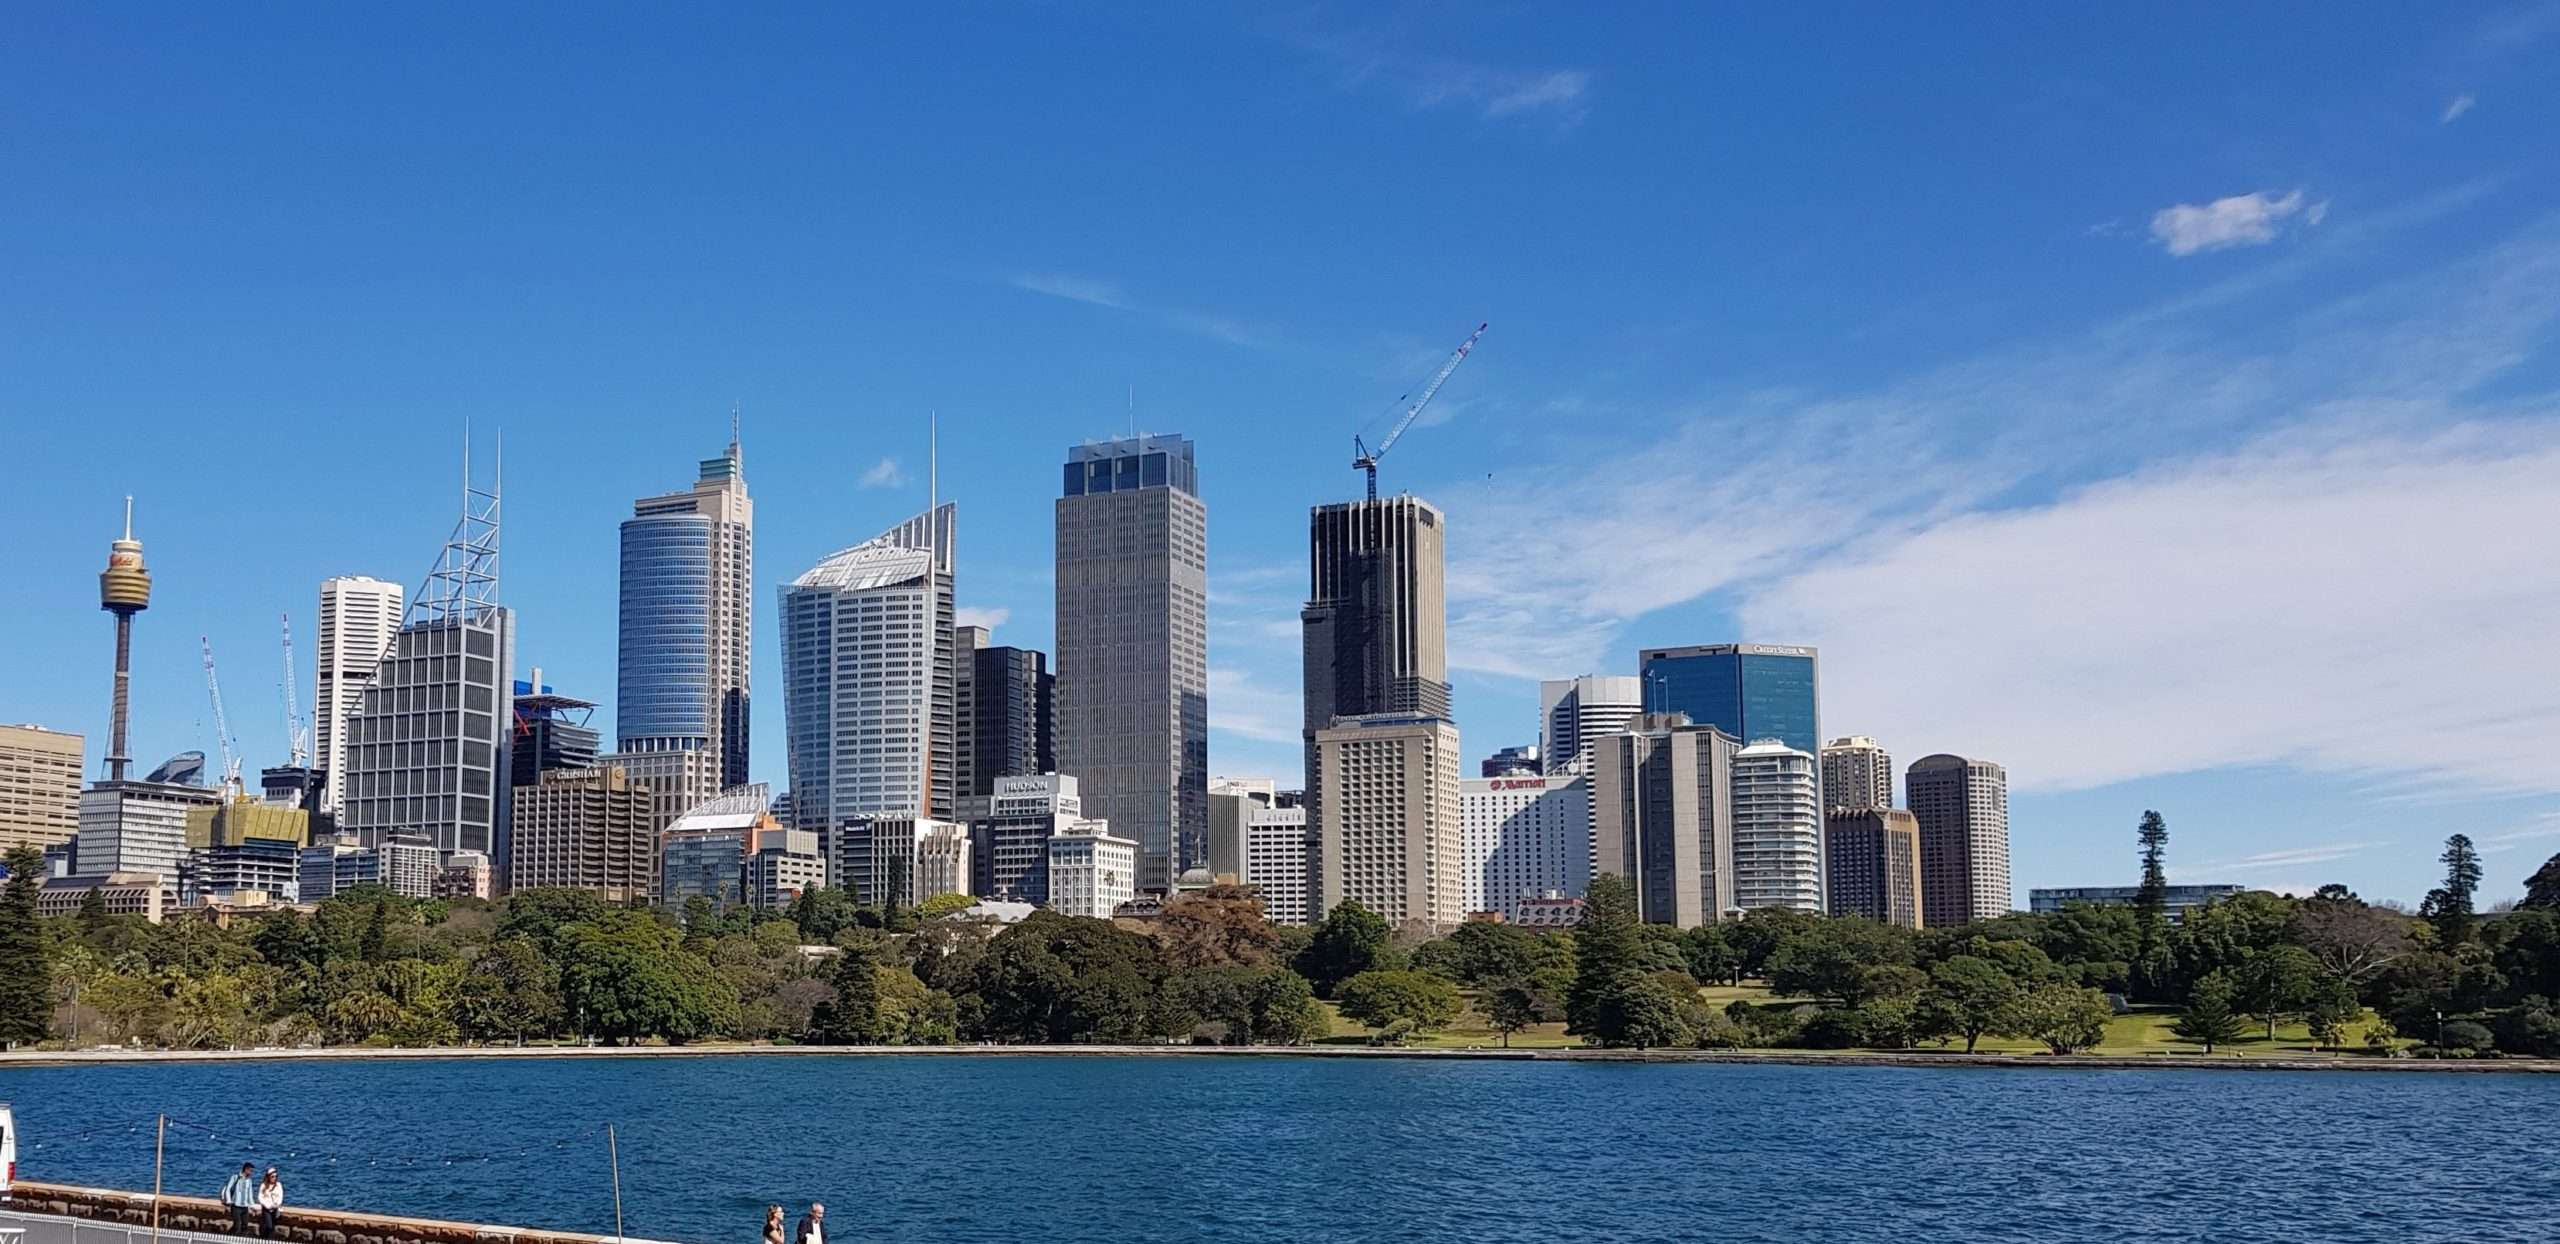 Looking at the Sydney city skyline from the east governor Phillip tower in the middle